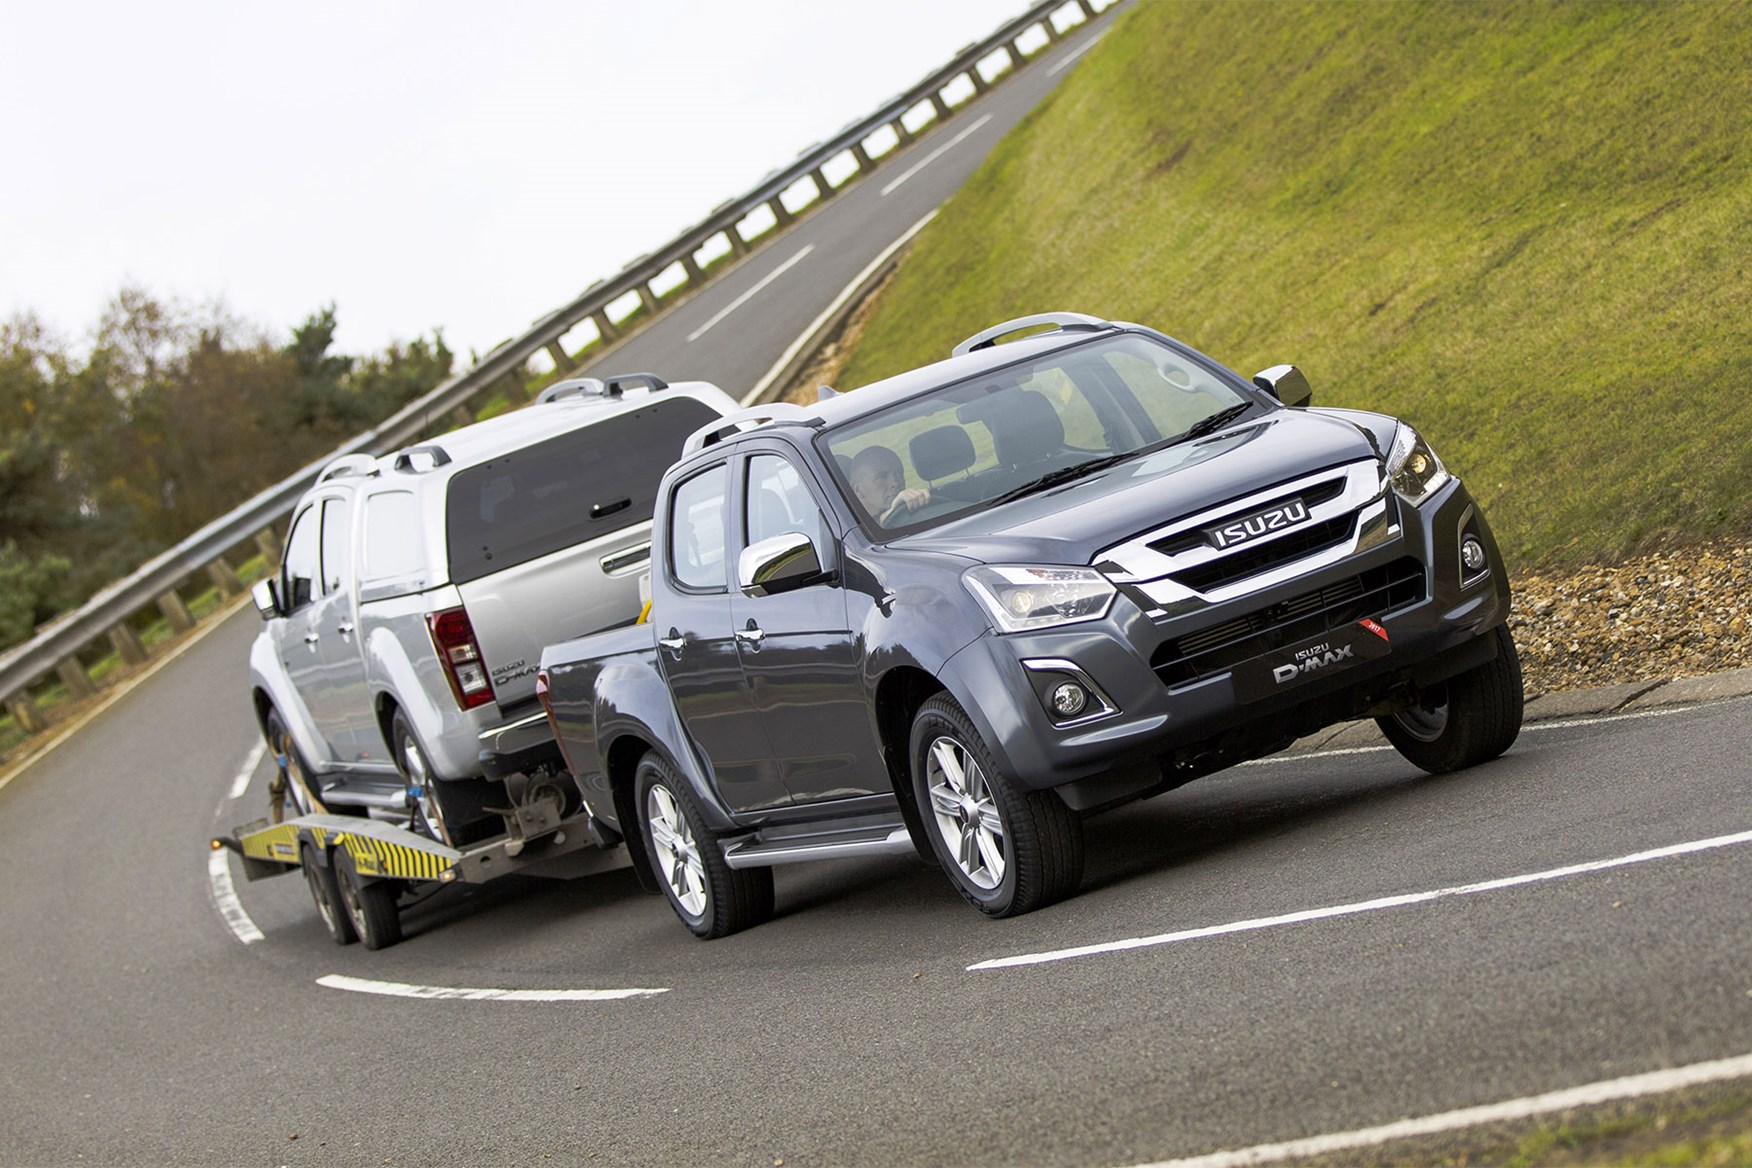 Isuzu D-Max payload capacity, kerb weight and gross vehicle weight (GVW) - towing another D-Max on a trailer